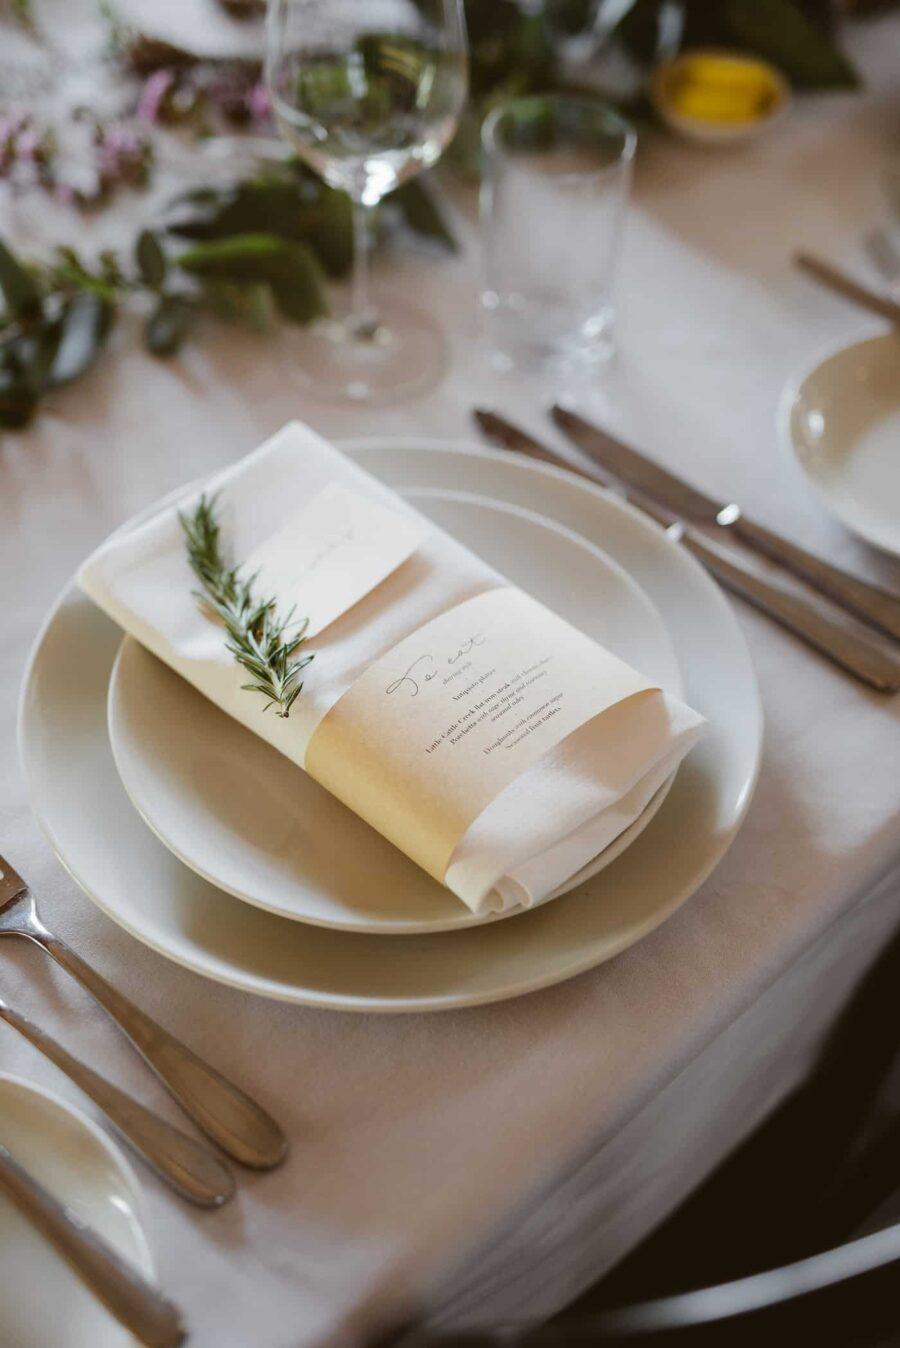 Rustic wedding at The Farm Yarra Valley – photography by Motta Weddings